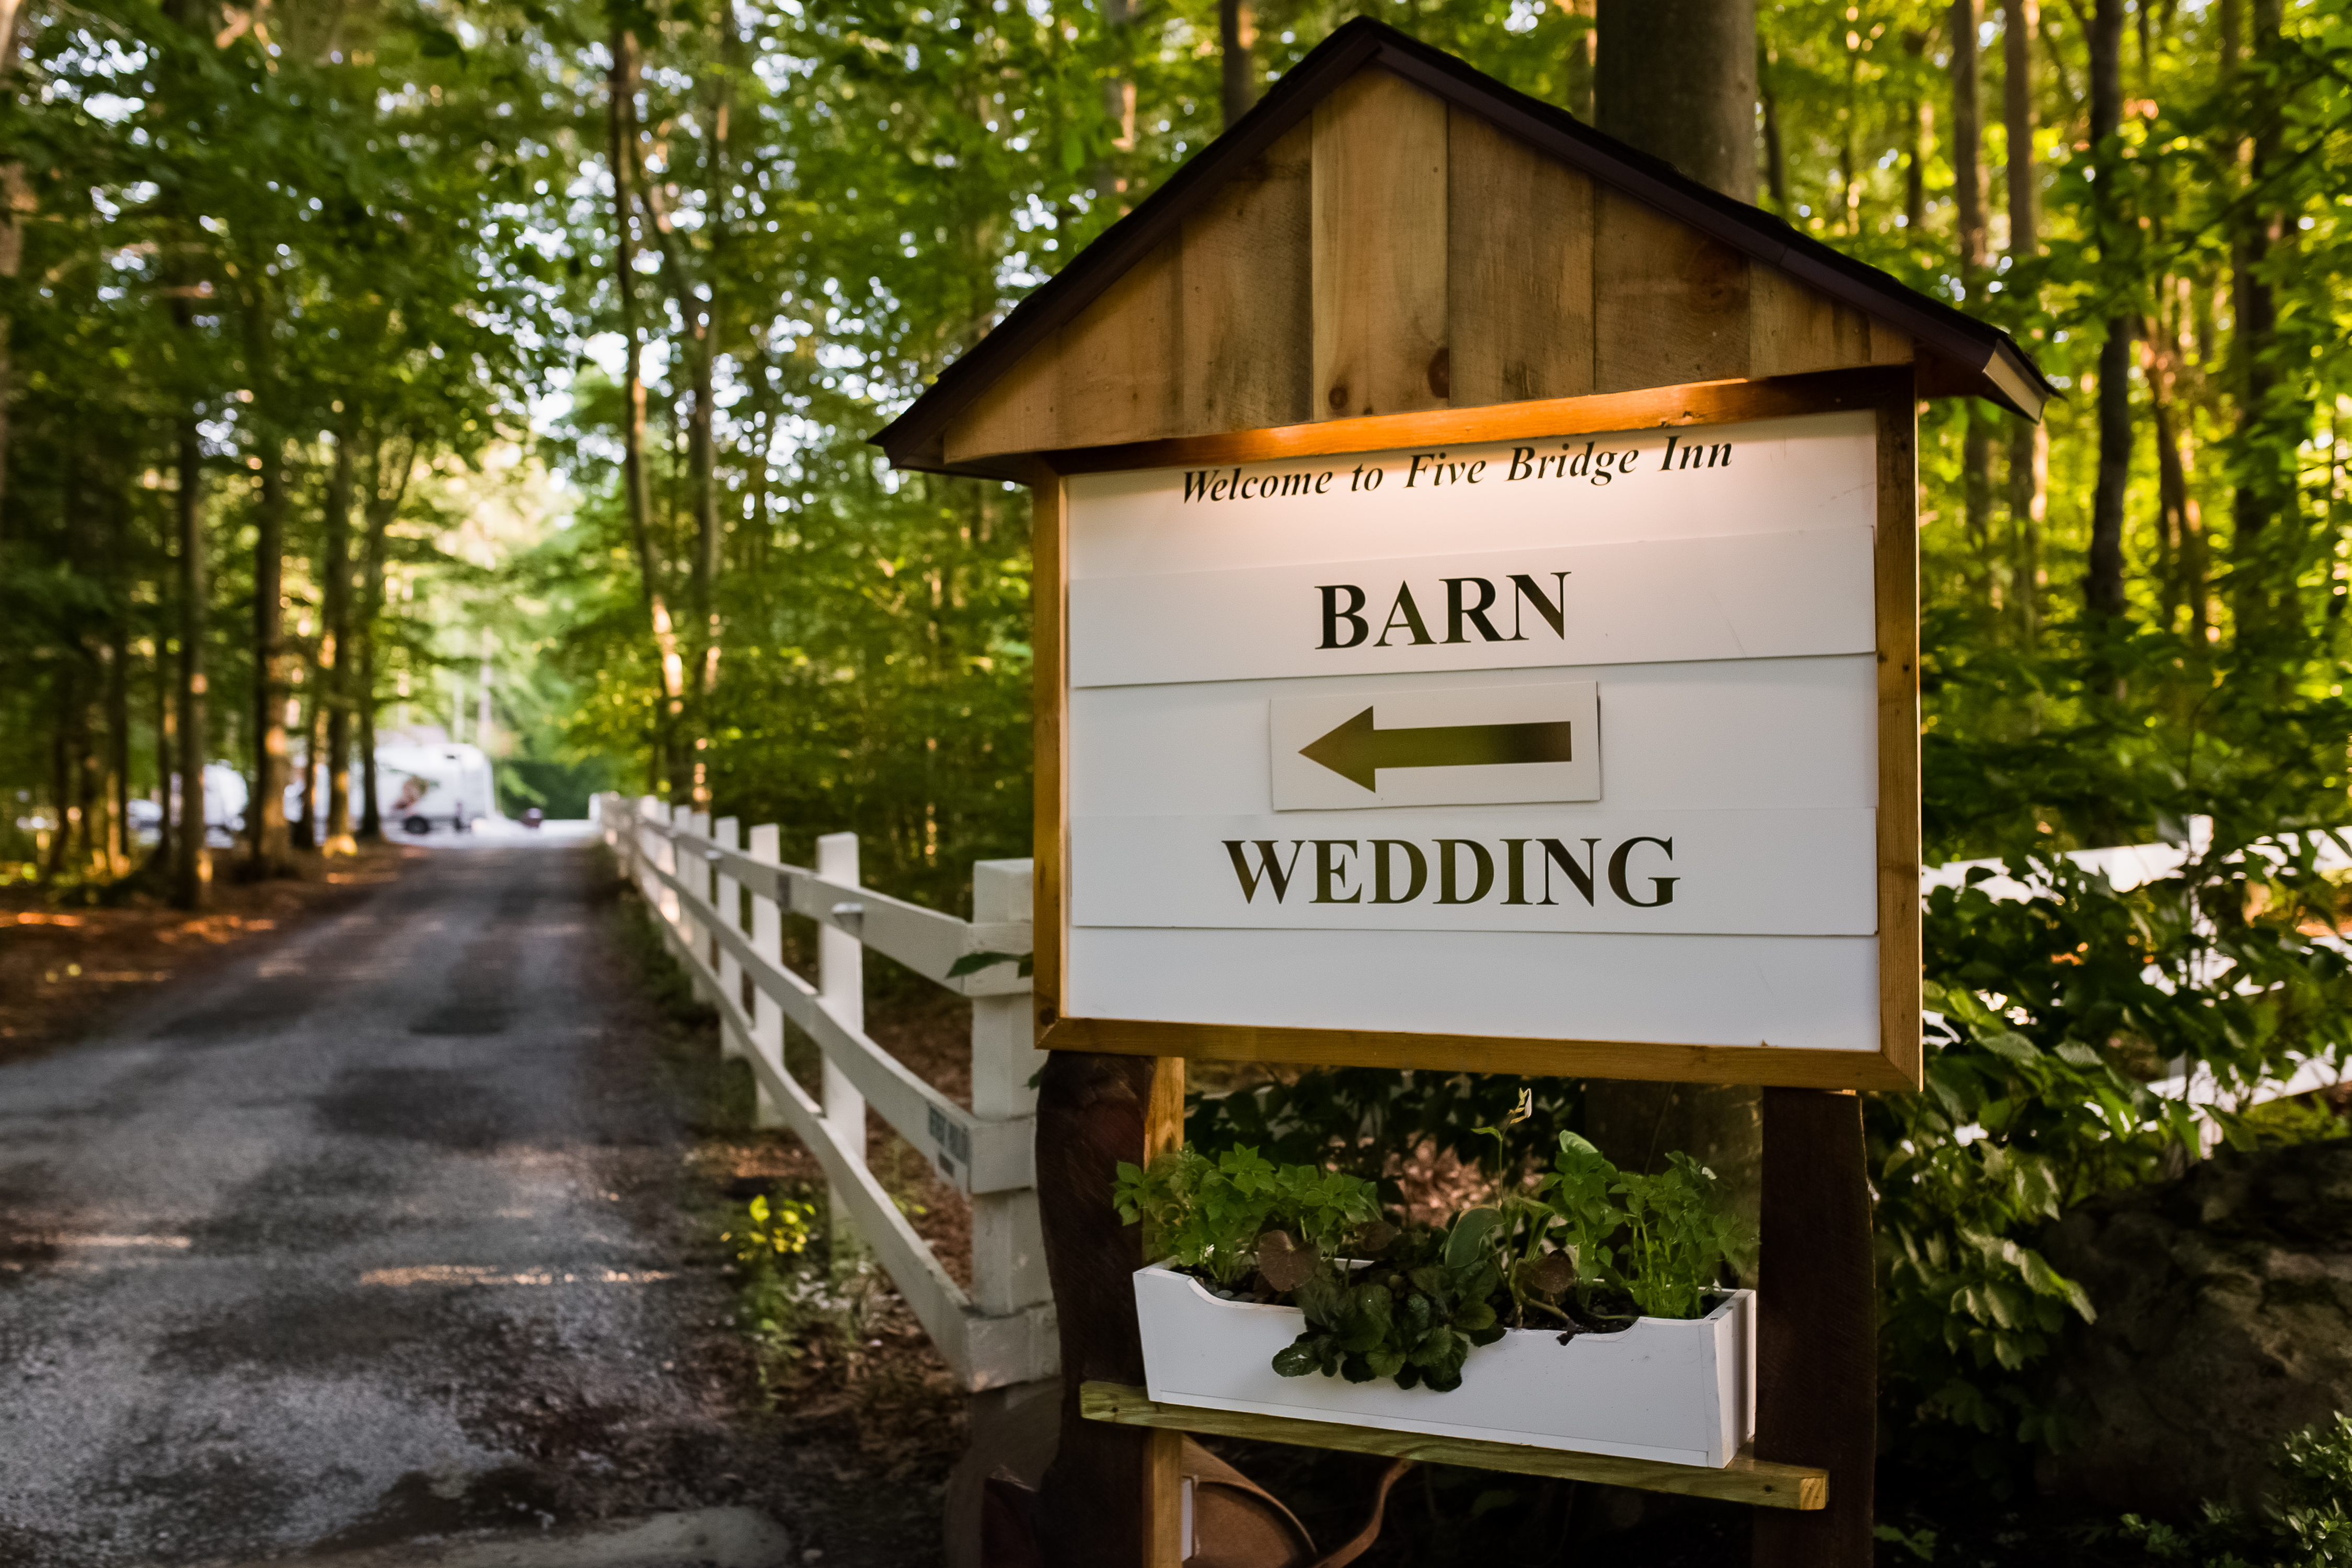 Five Bridge Inn Wedding Barn